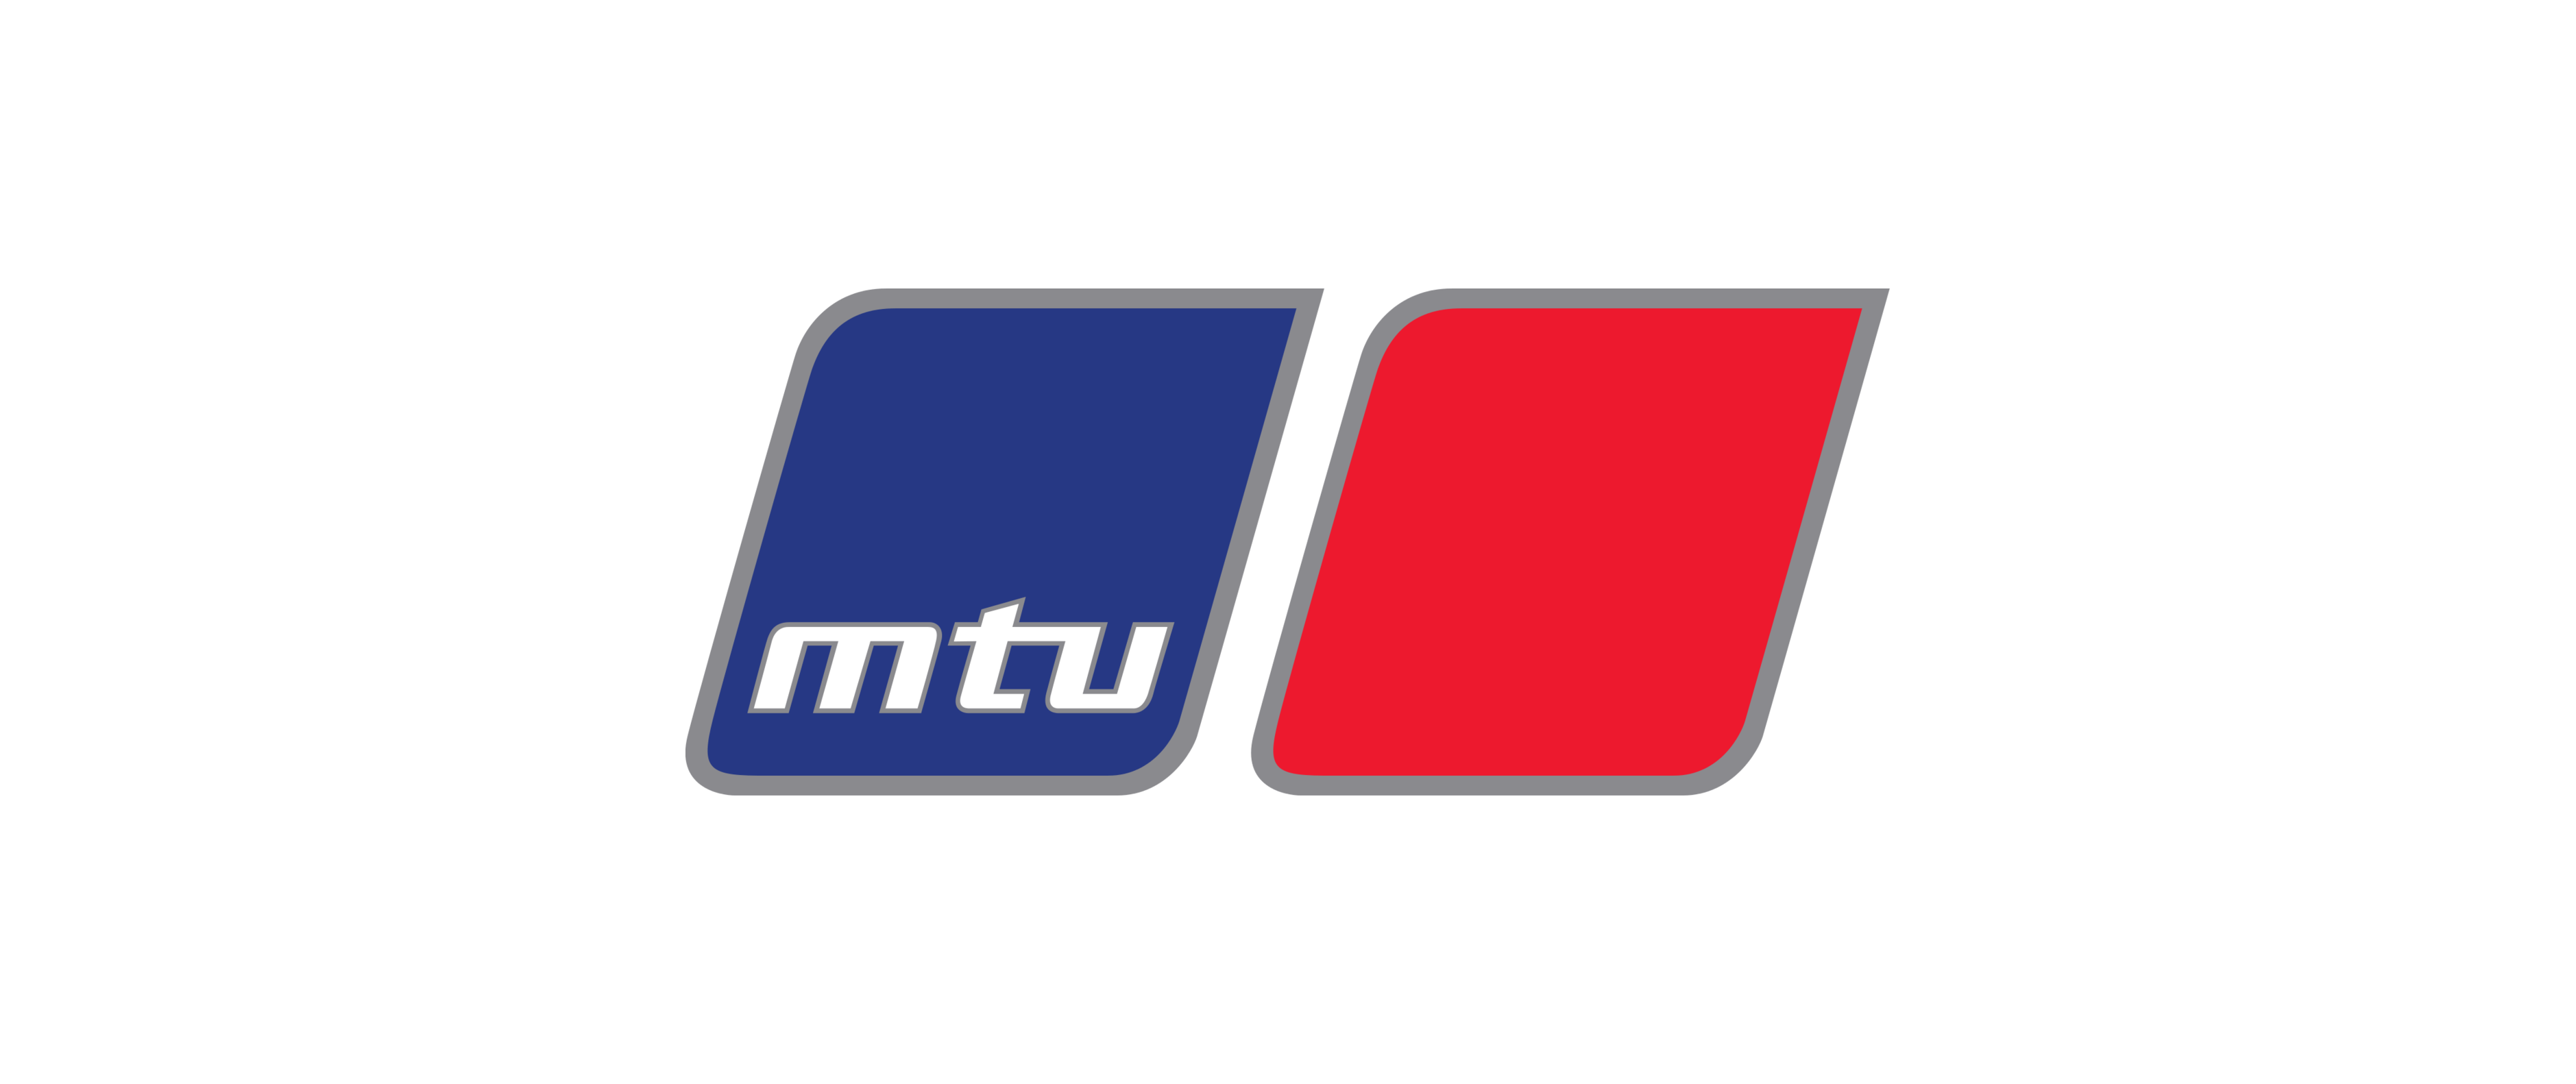 MTU – Power. Passion. Partnership.